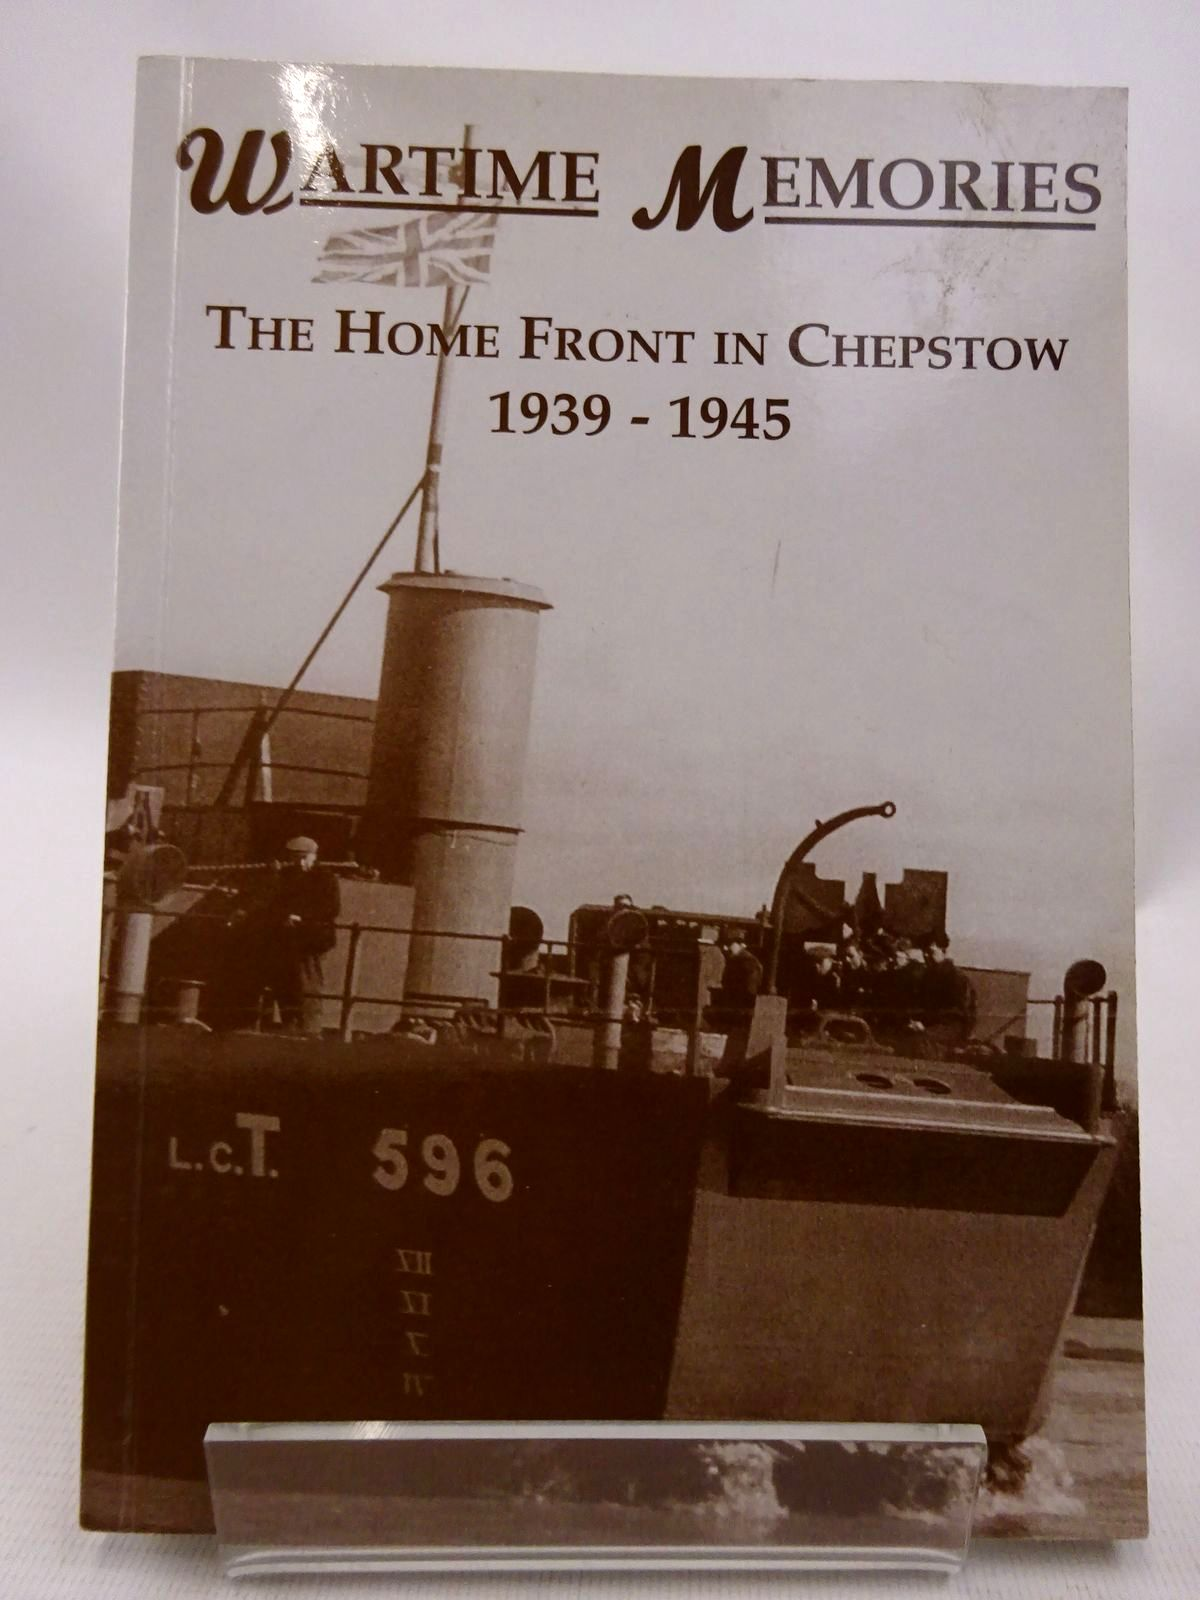 Photo of WARTIME MEMORIES: THE HOME FRONT IN CHEPSTOW 1939-1945 published by The Chepstow Society (STOCK CODE: 1815788)  for sale by Stella & Rose's Books